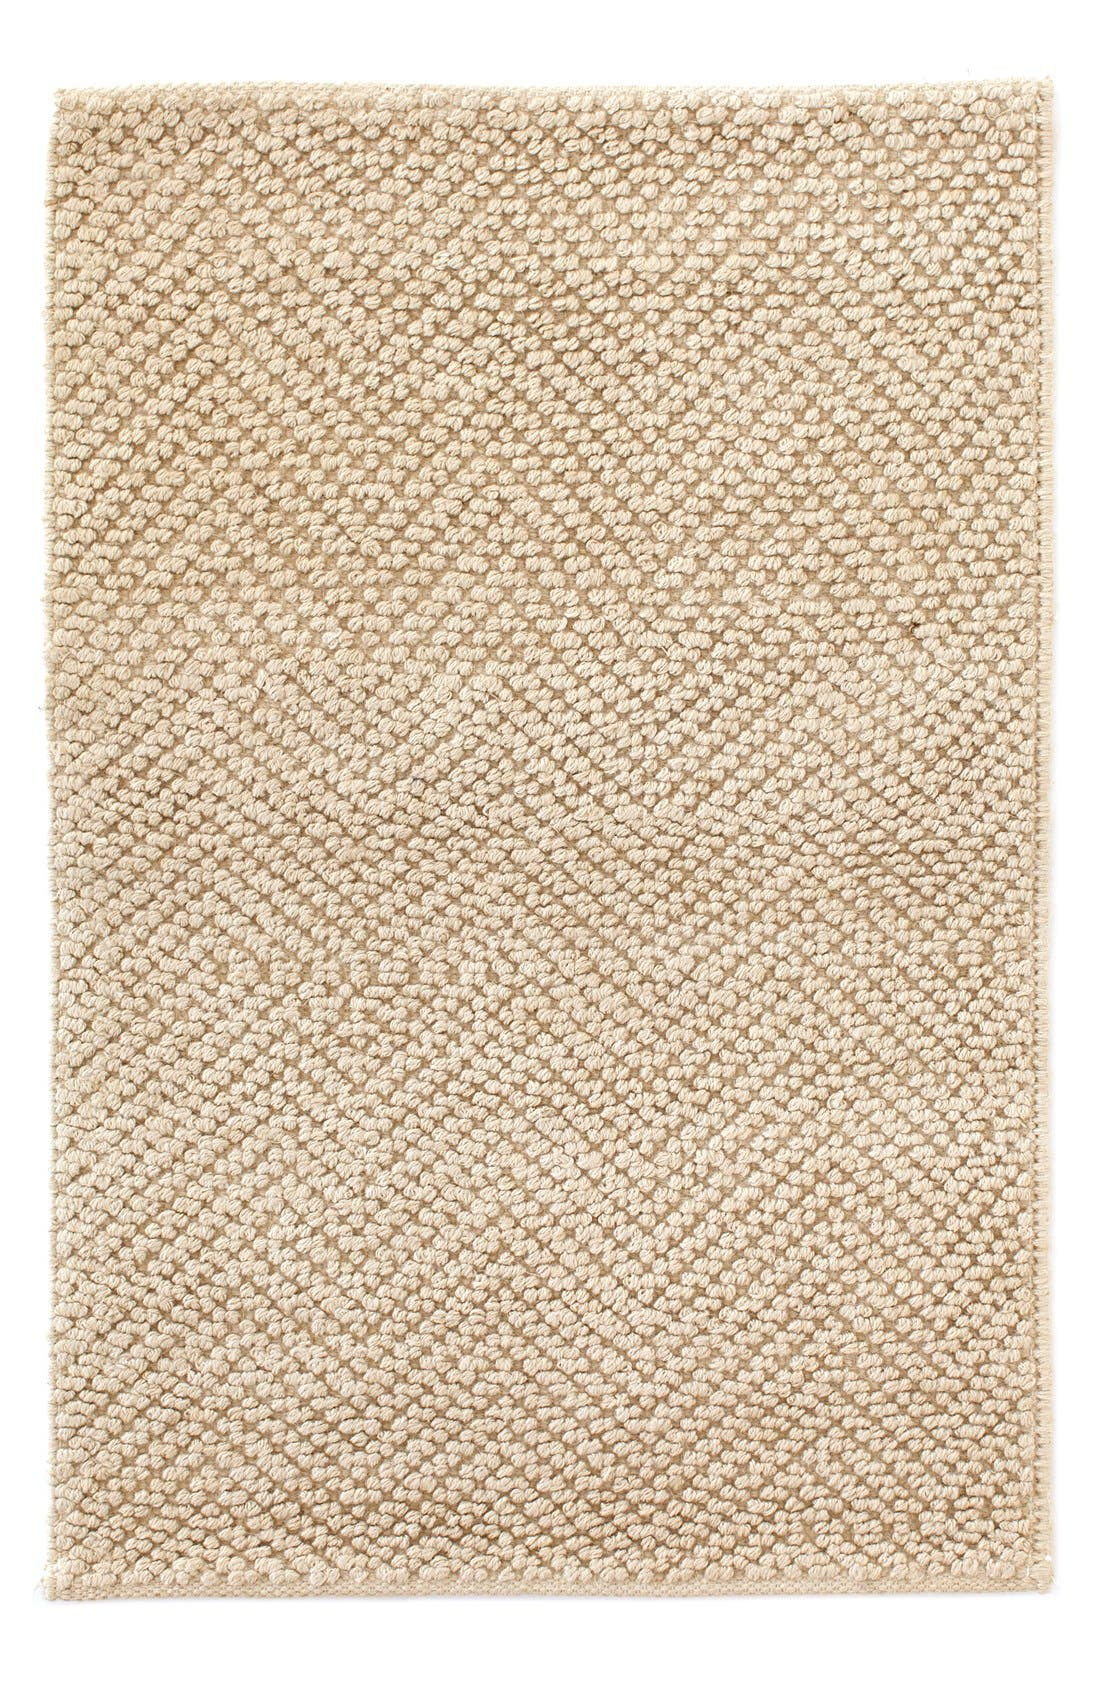 Dash & Albert Woven Jute & Cotton Rug